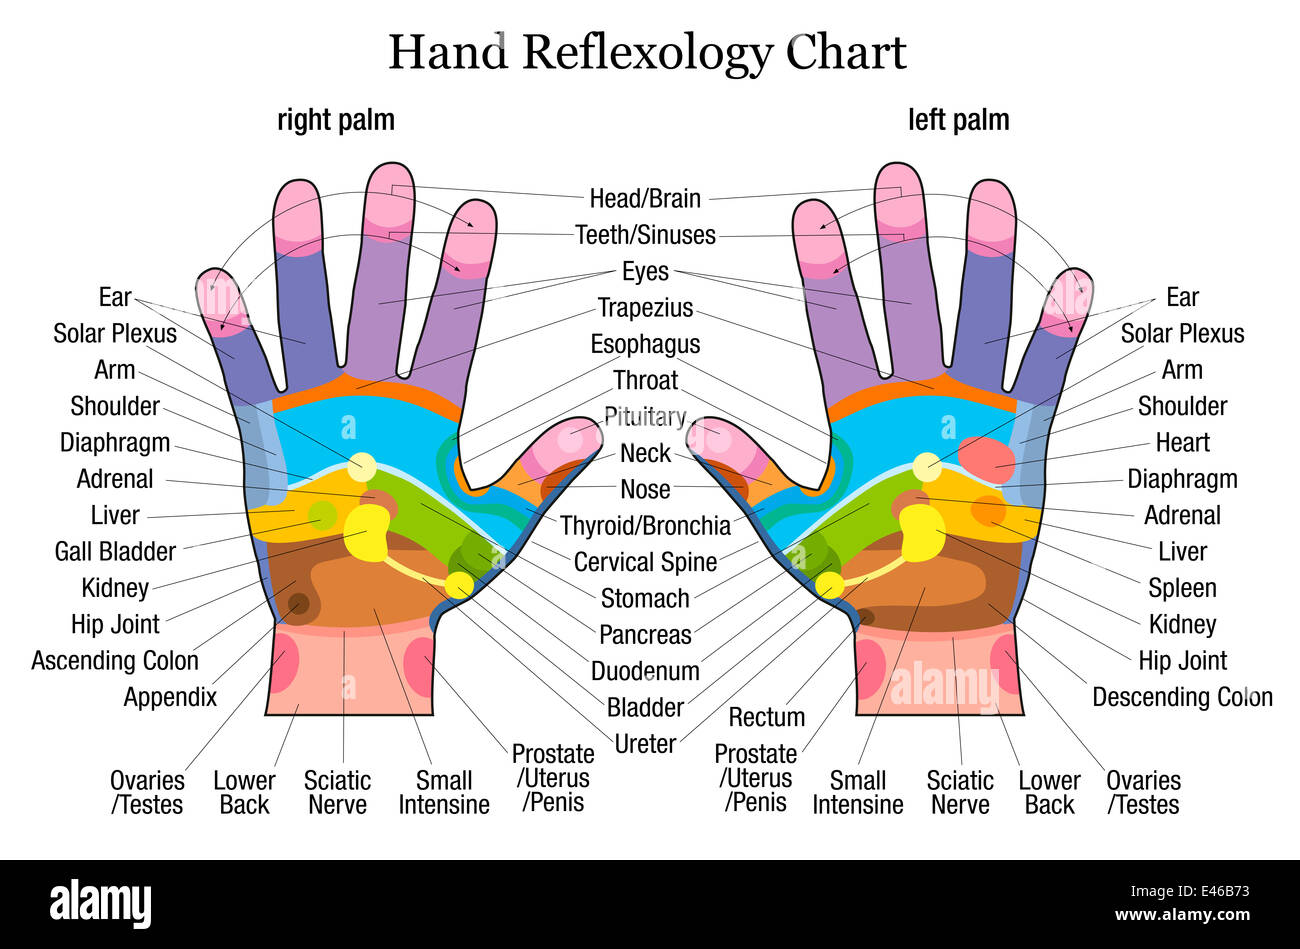 Hand Reflexology Chart With Accurate Description Of The